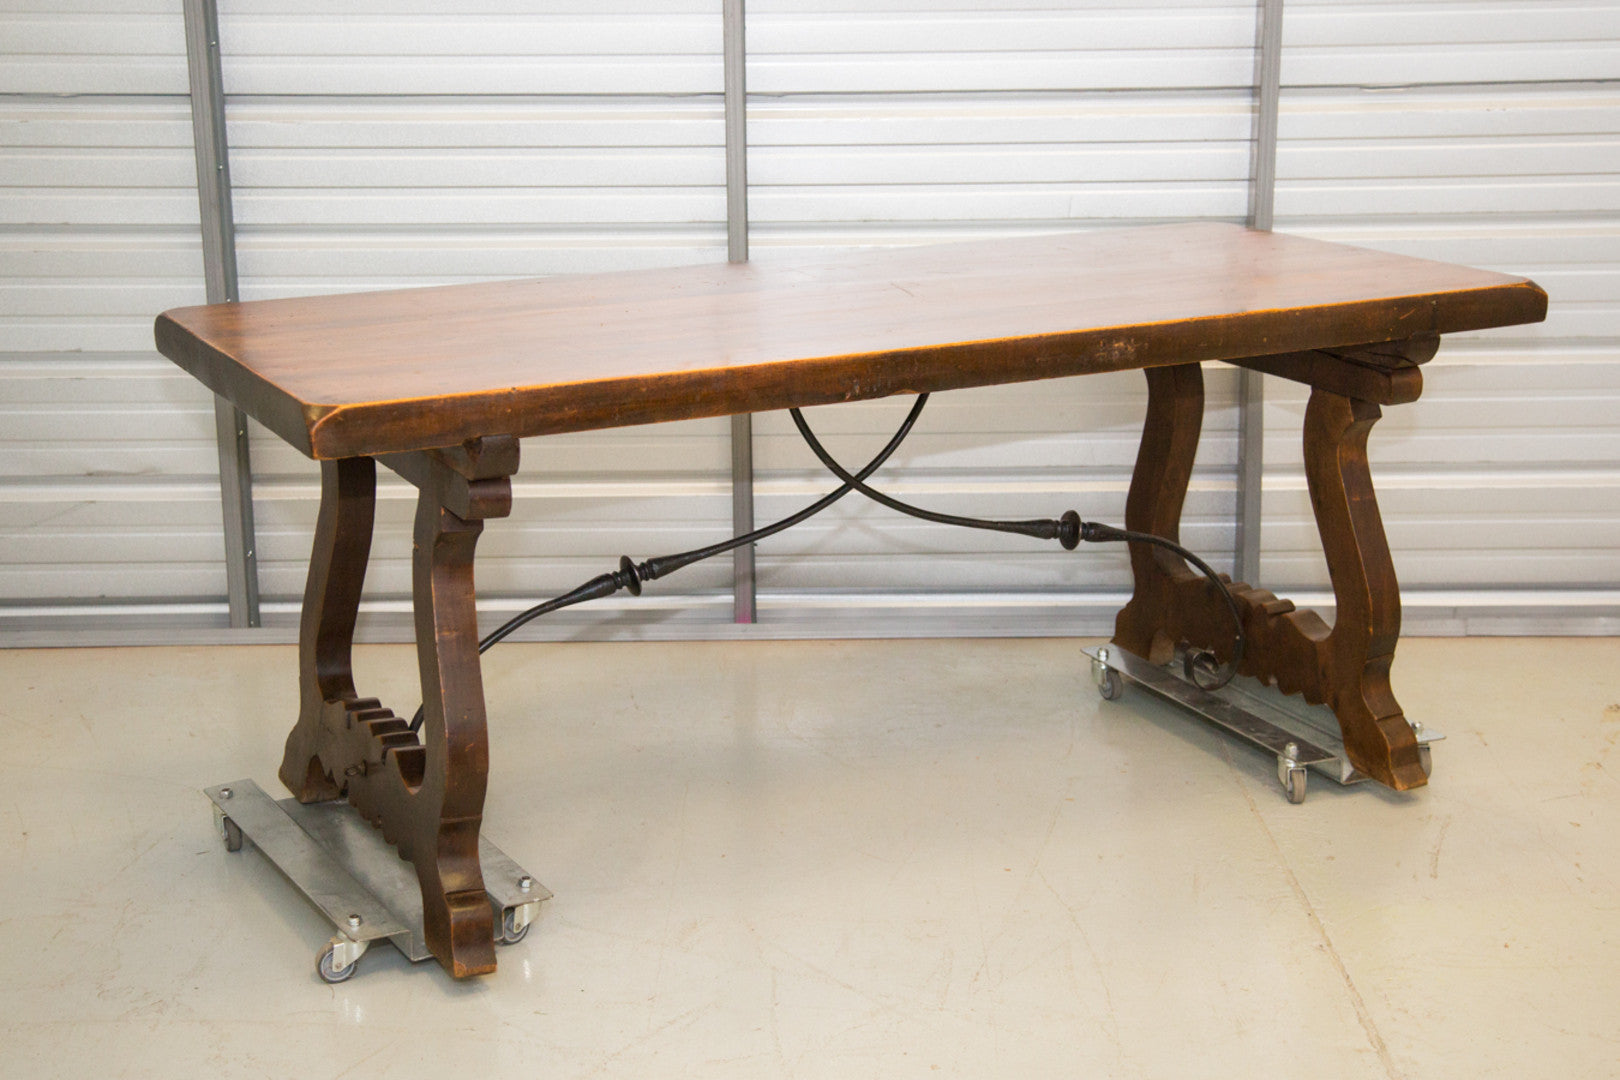 Spanish Trestle Table - 19th Century